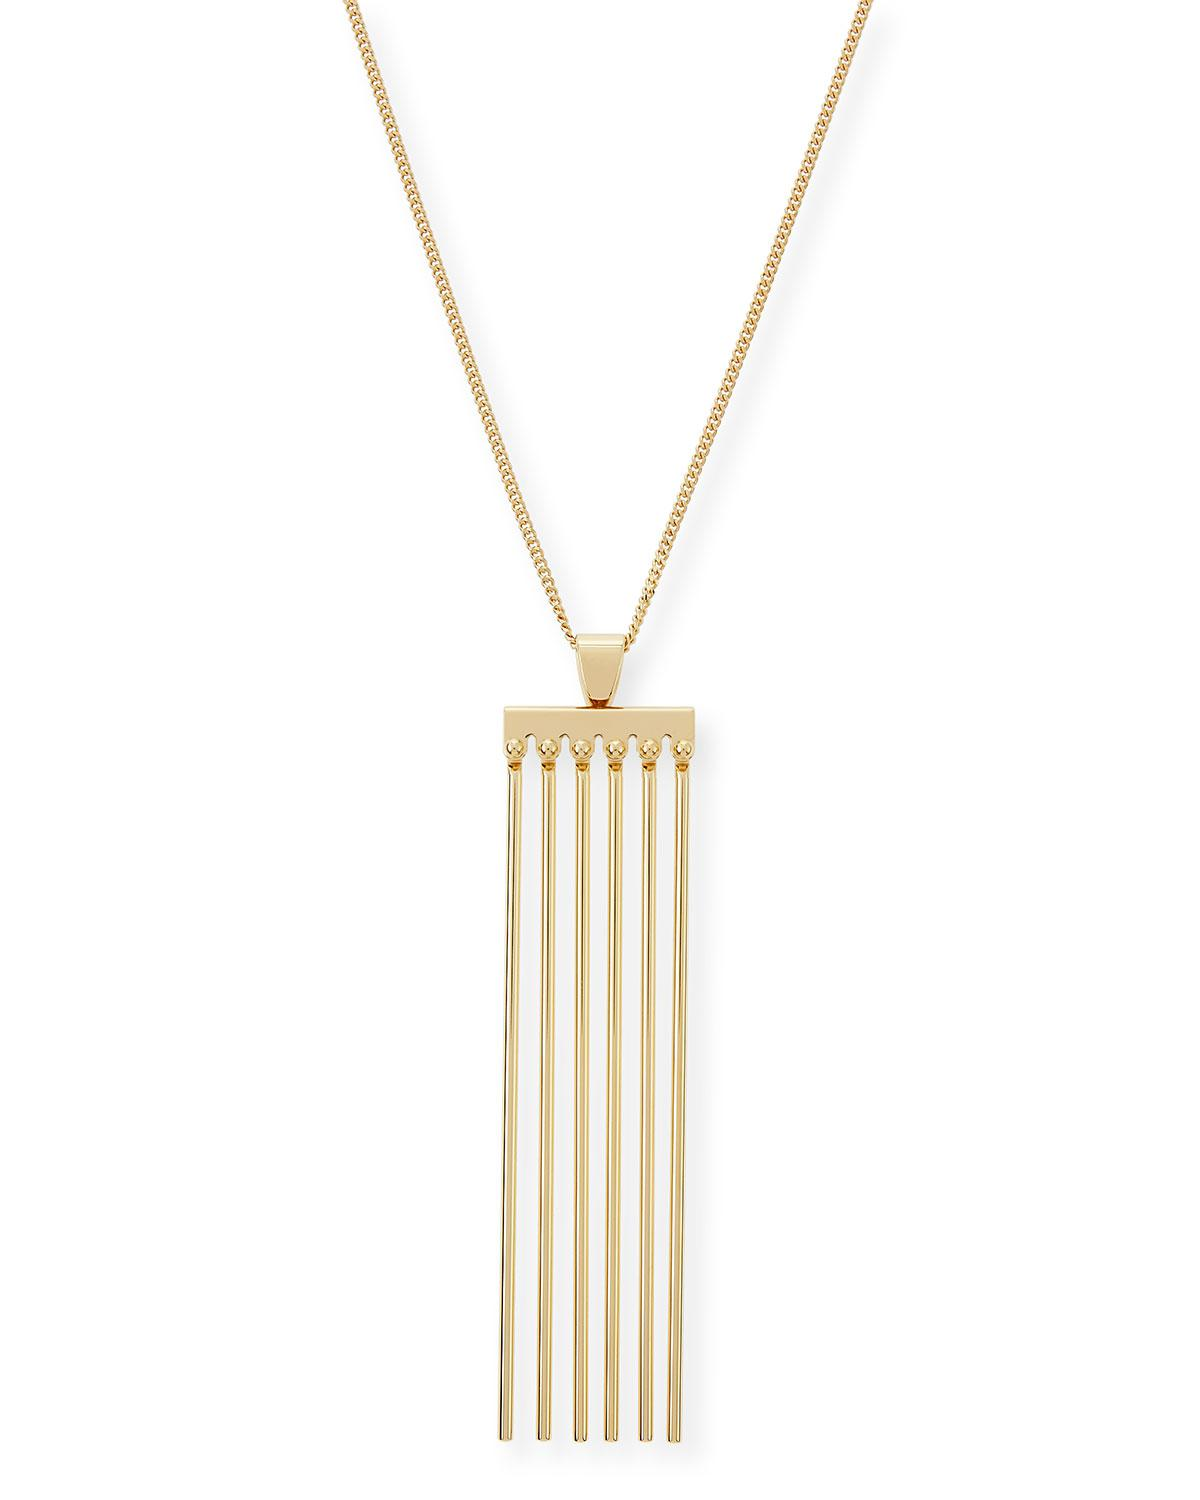 Chloé Keira Long Necklace in Metallics 8tglvnapEM